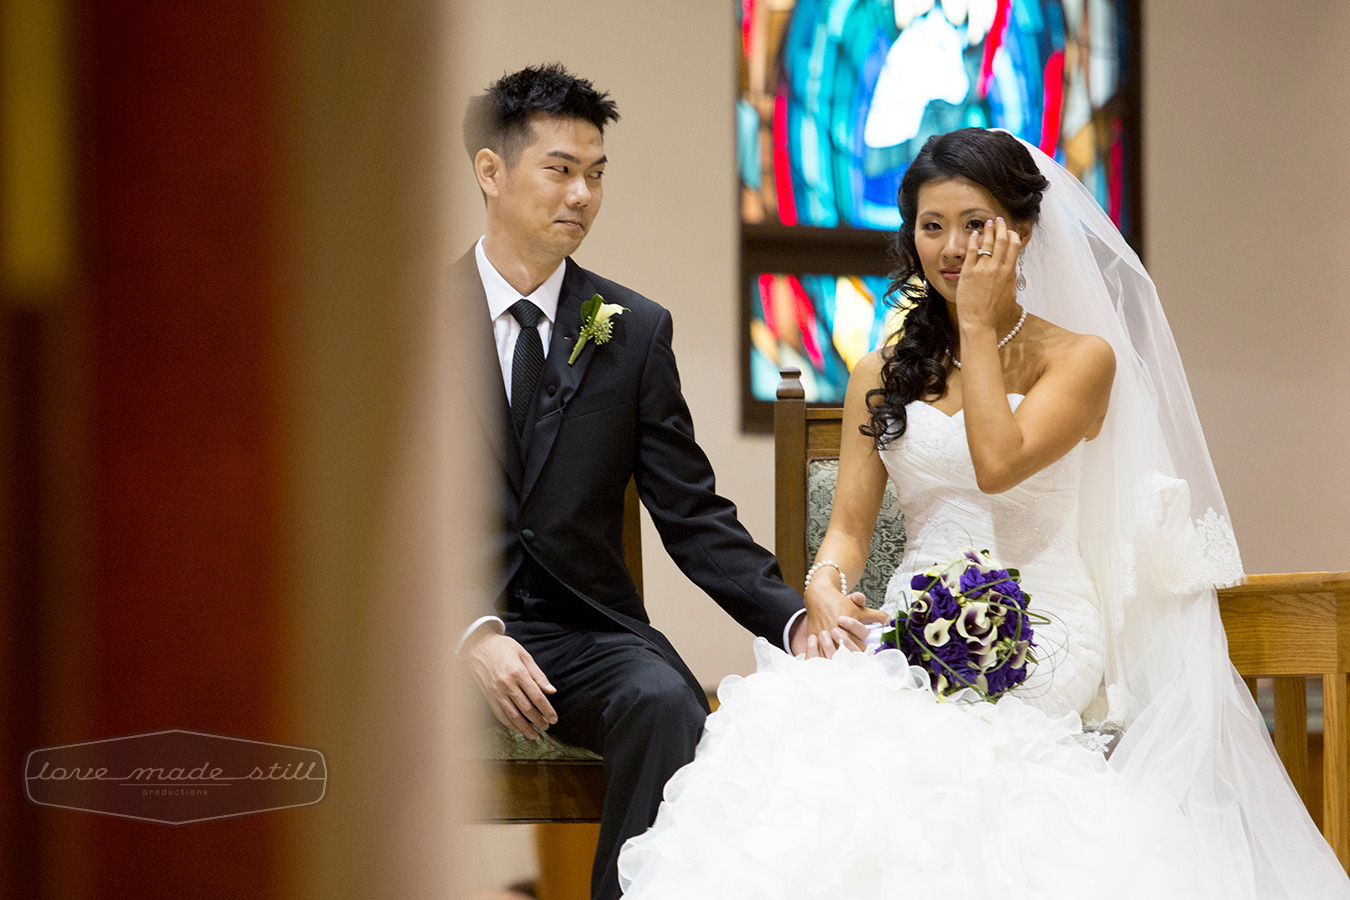 Wedding ceremony;Wedding venue;Journalistc wedding photography; Wedding dress;Groom comforts bride;true love; Asian wedding in Austin Tx;